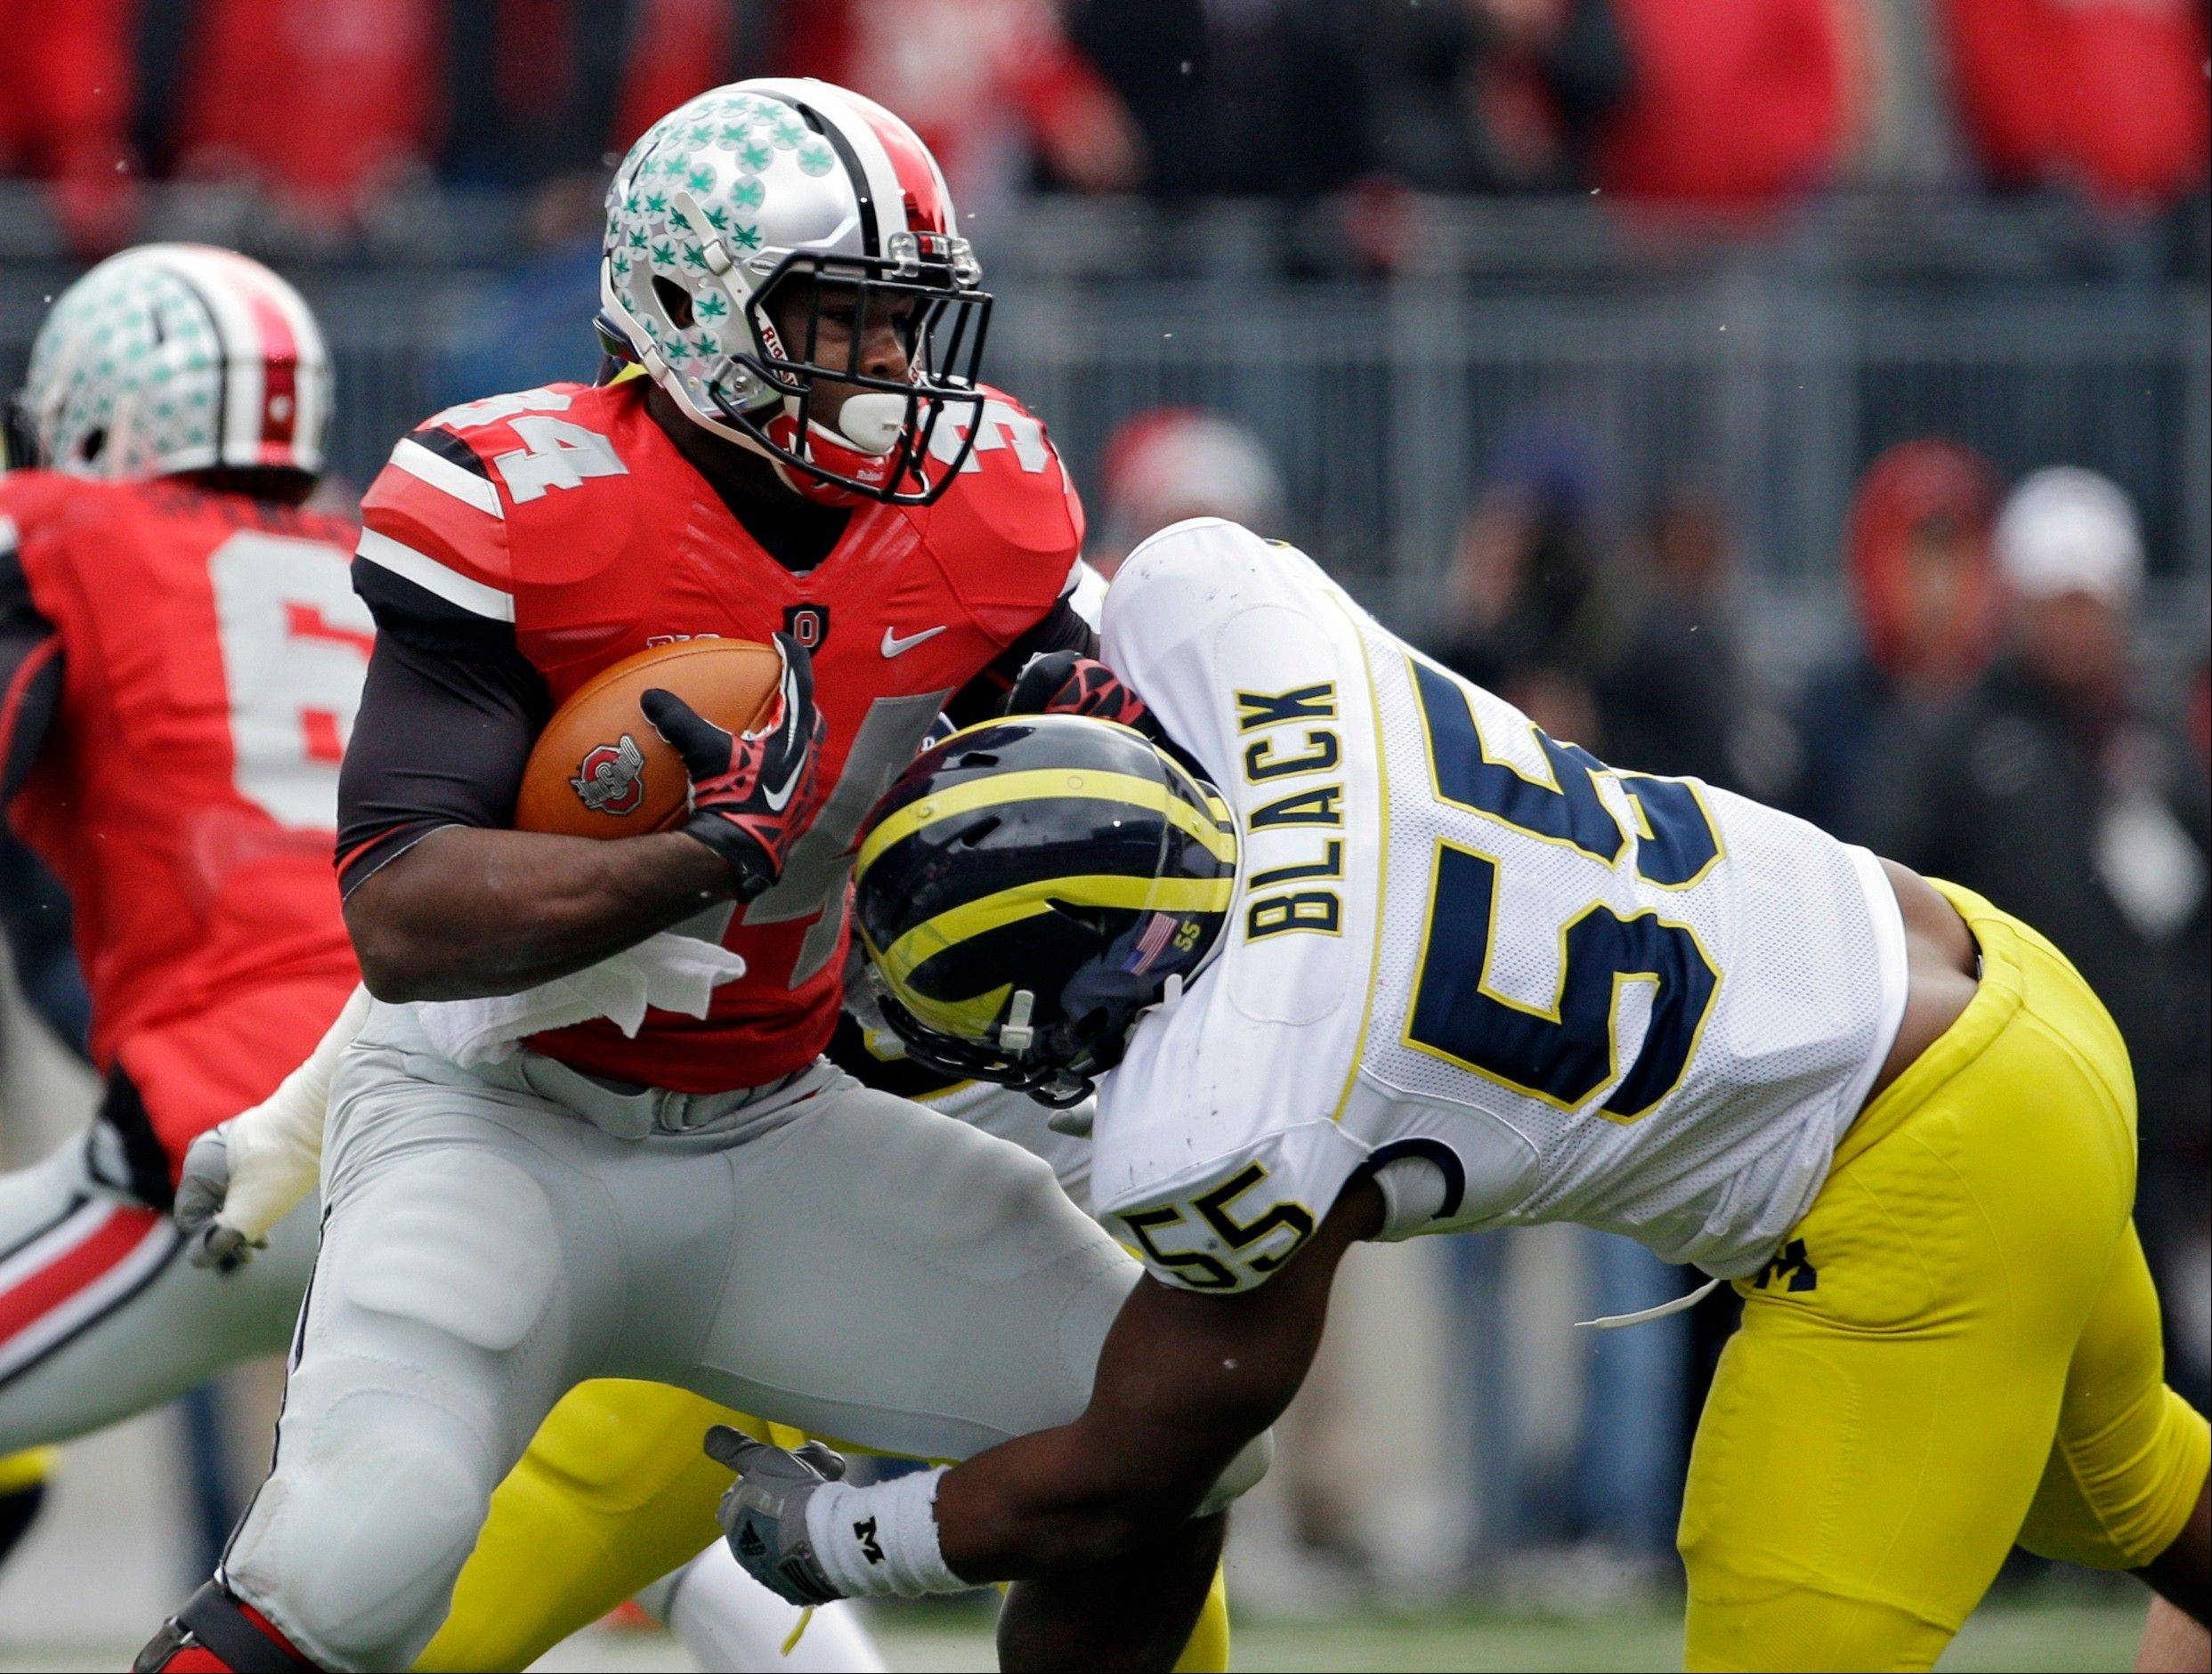 After a three-game suspension, Carlos Hyde returns to No. 4 Ohio State's backfield, creating a glut of players all seeking carries for the Buckeyes when they play Florida A&M on Saturday.